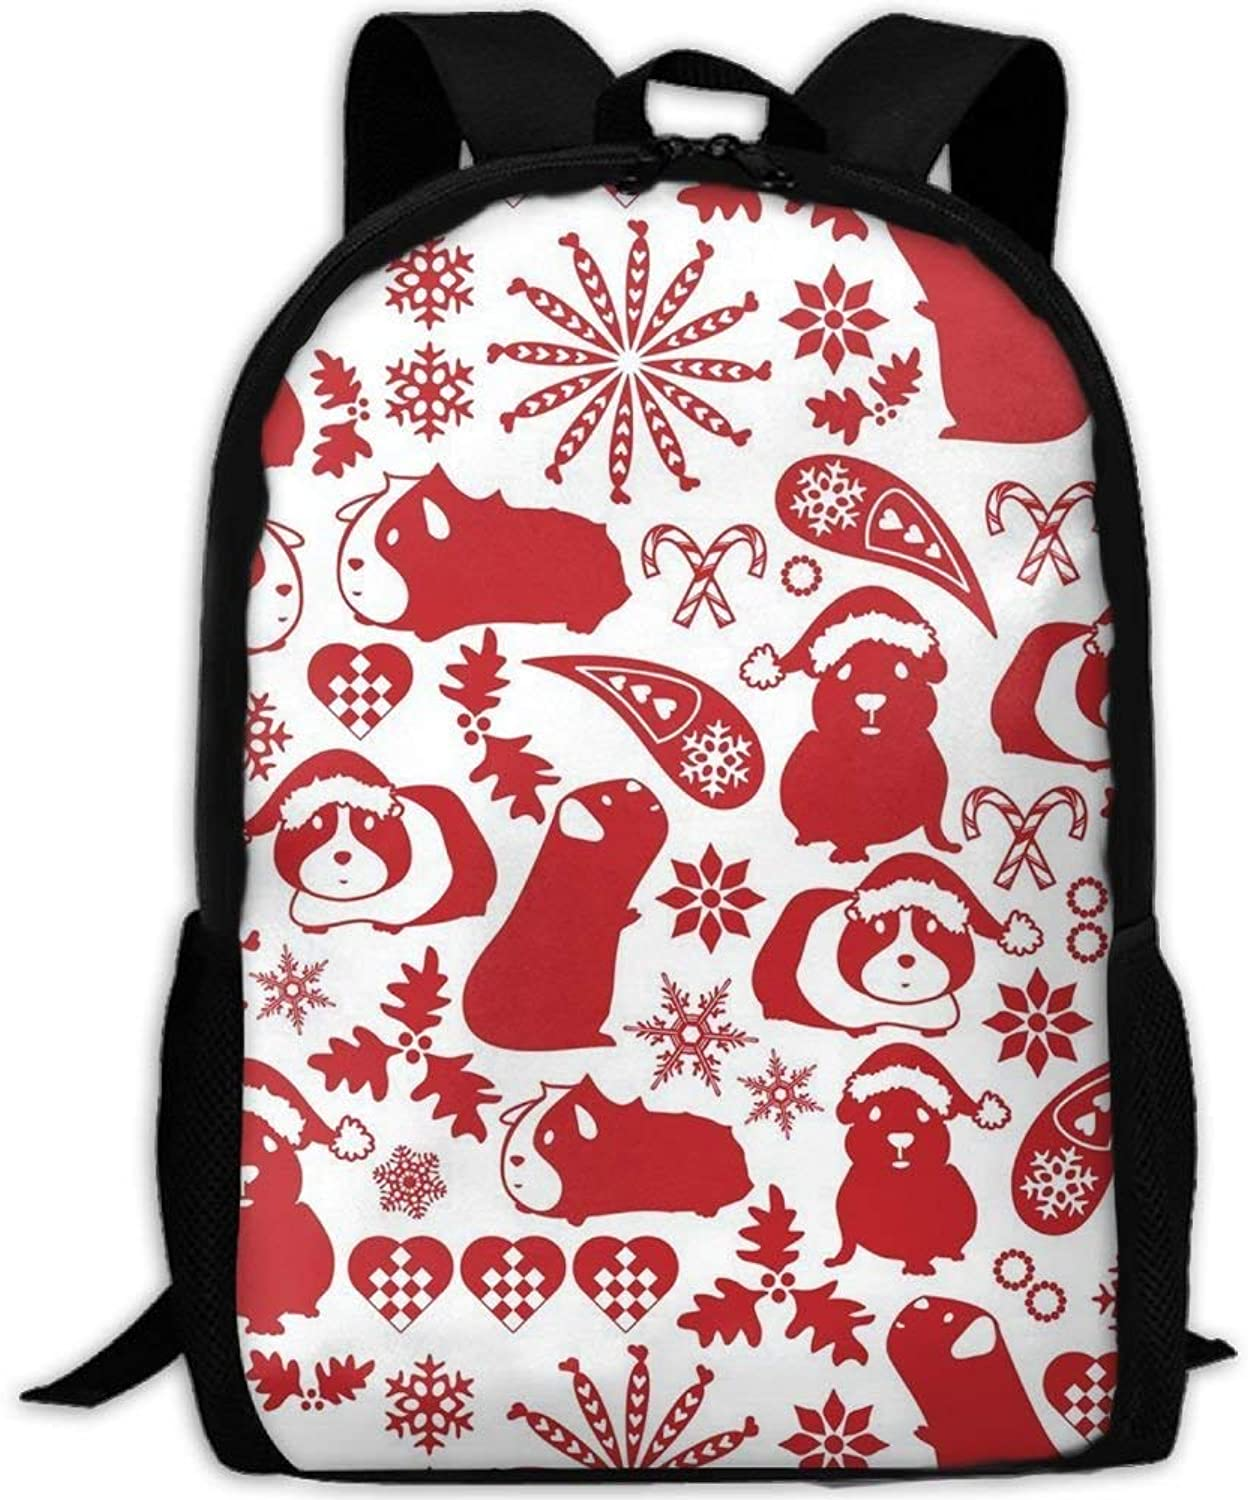 Student Backpack, School Backpack for Laptop,Most Durable Durable Durable Lightweight Cute Travel Water Resistant School Backpack - Christmas Pig B07PYG94G9  Erste Gruppe von Kunden 4094c8